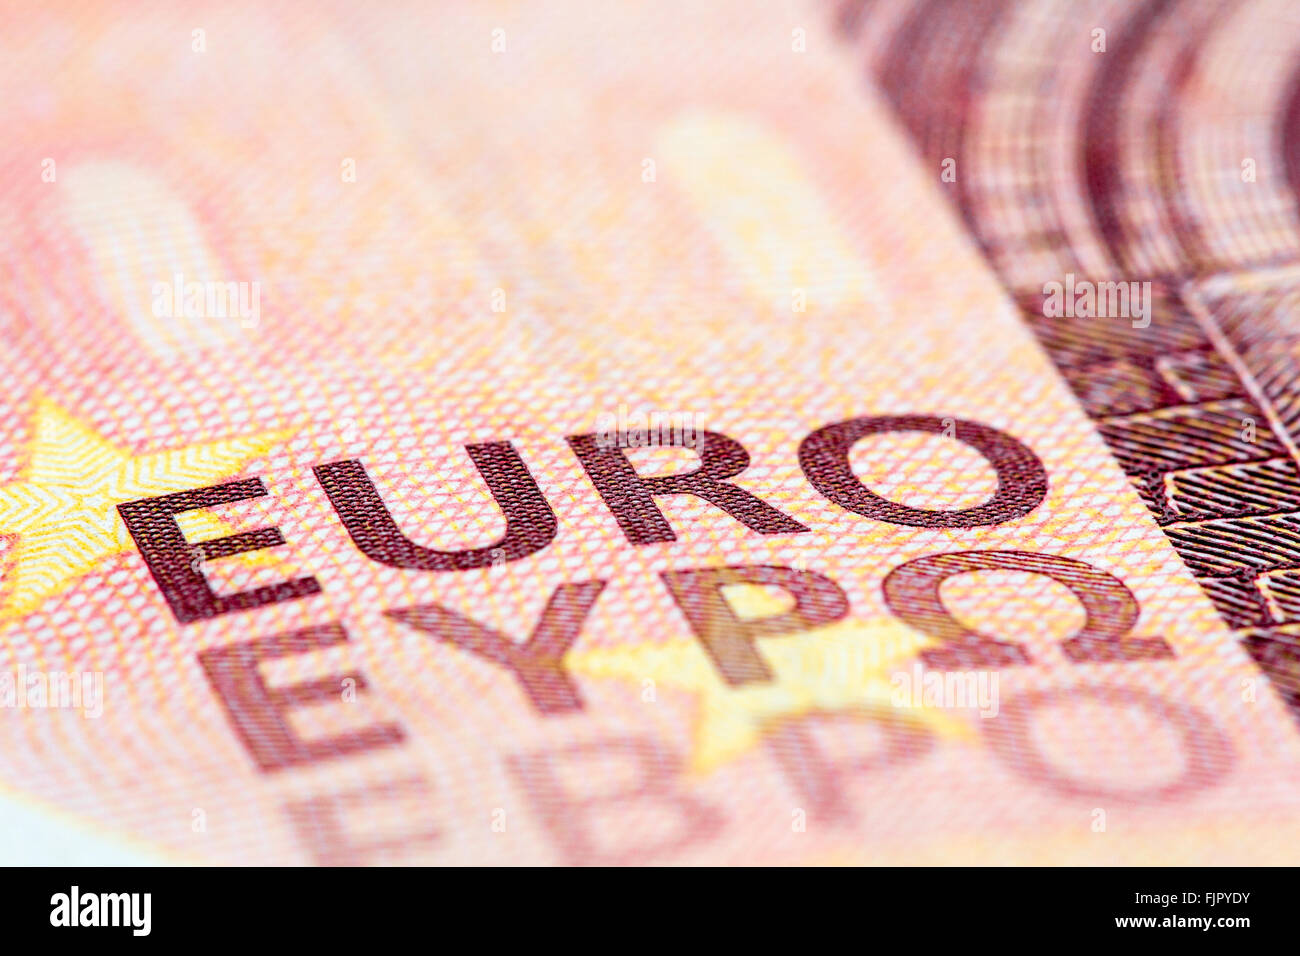 Detailed close up of a ten Euro banknote from Europe serie - Stock Image